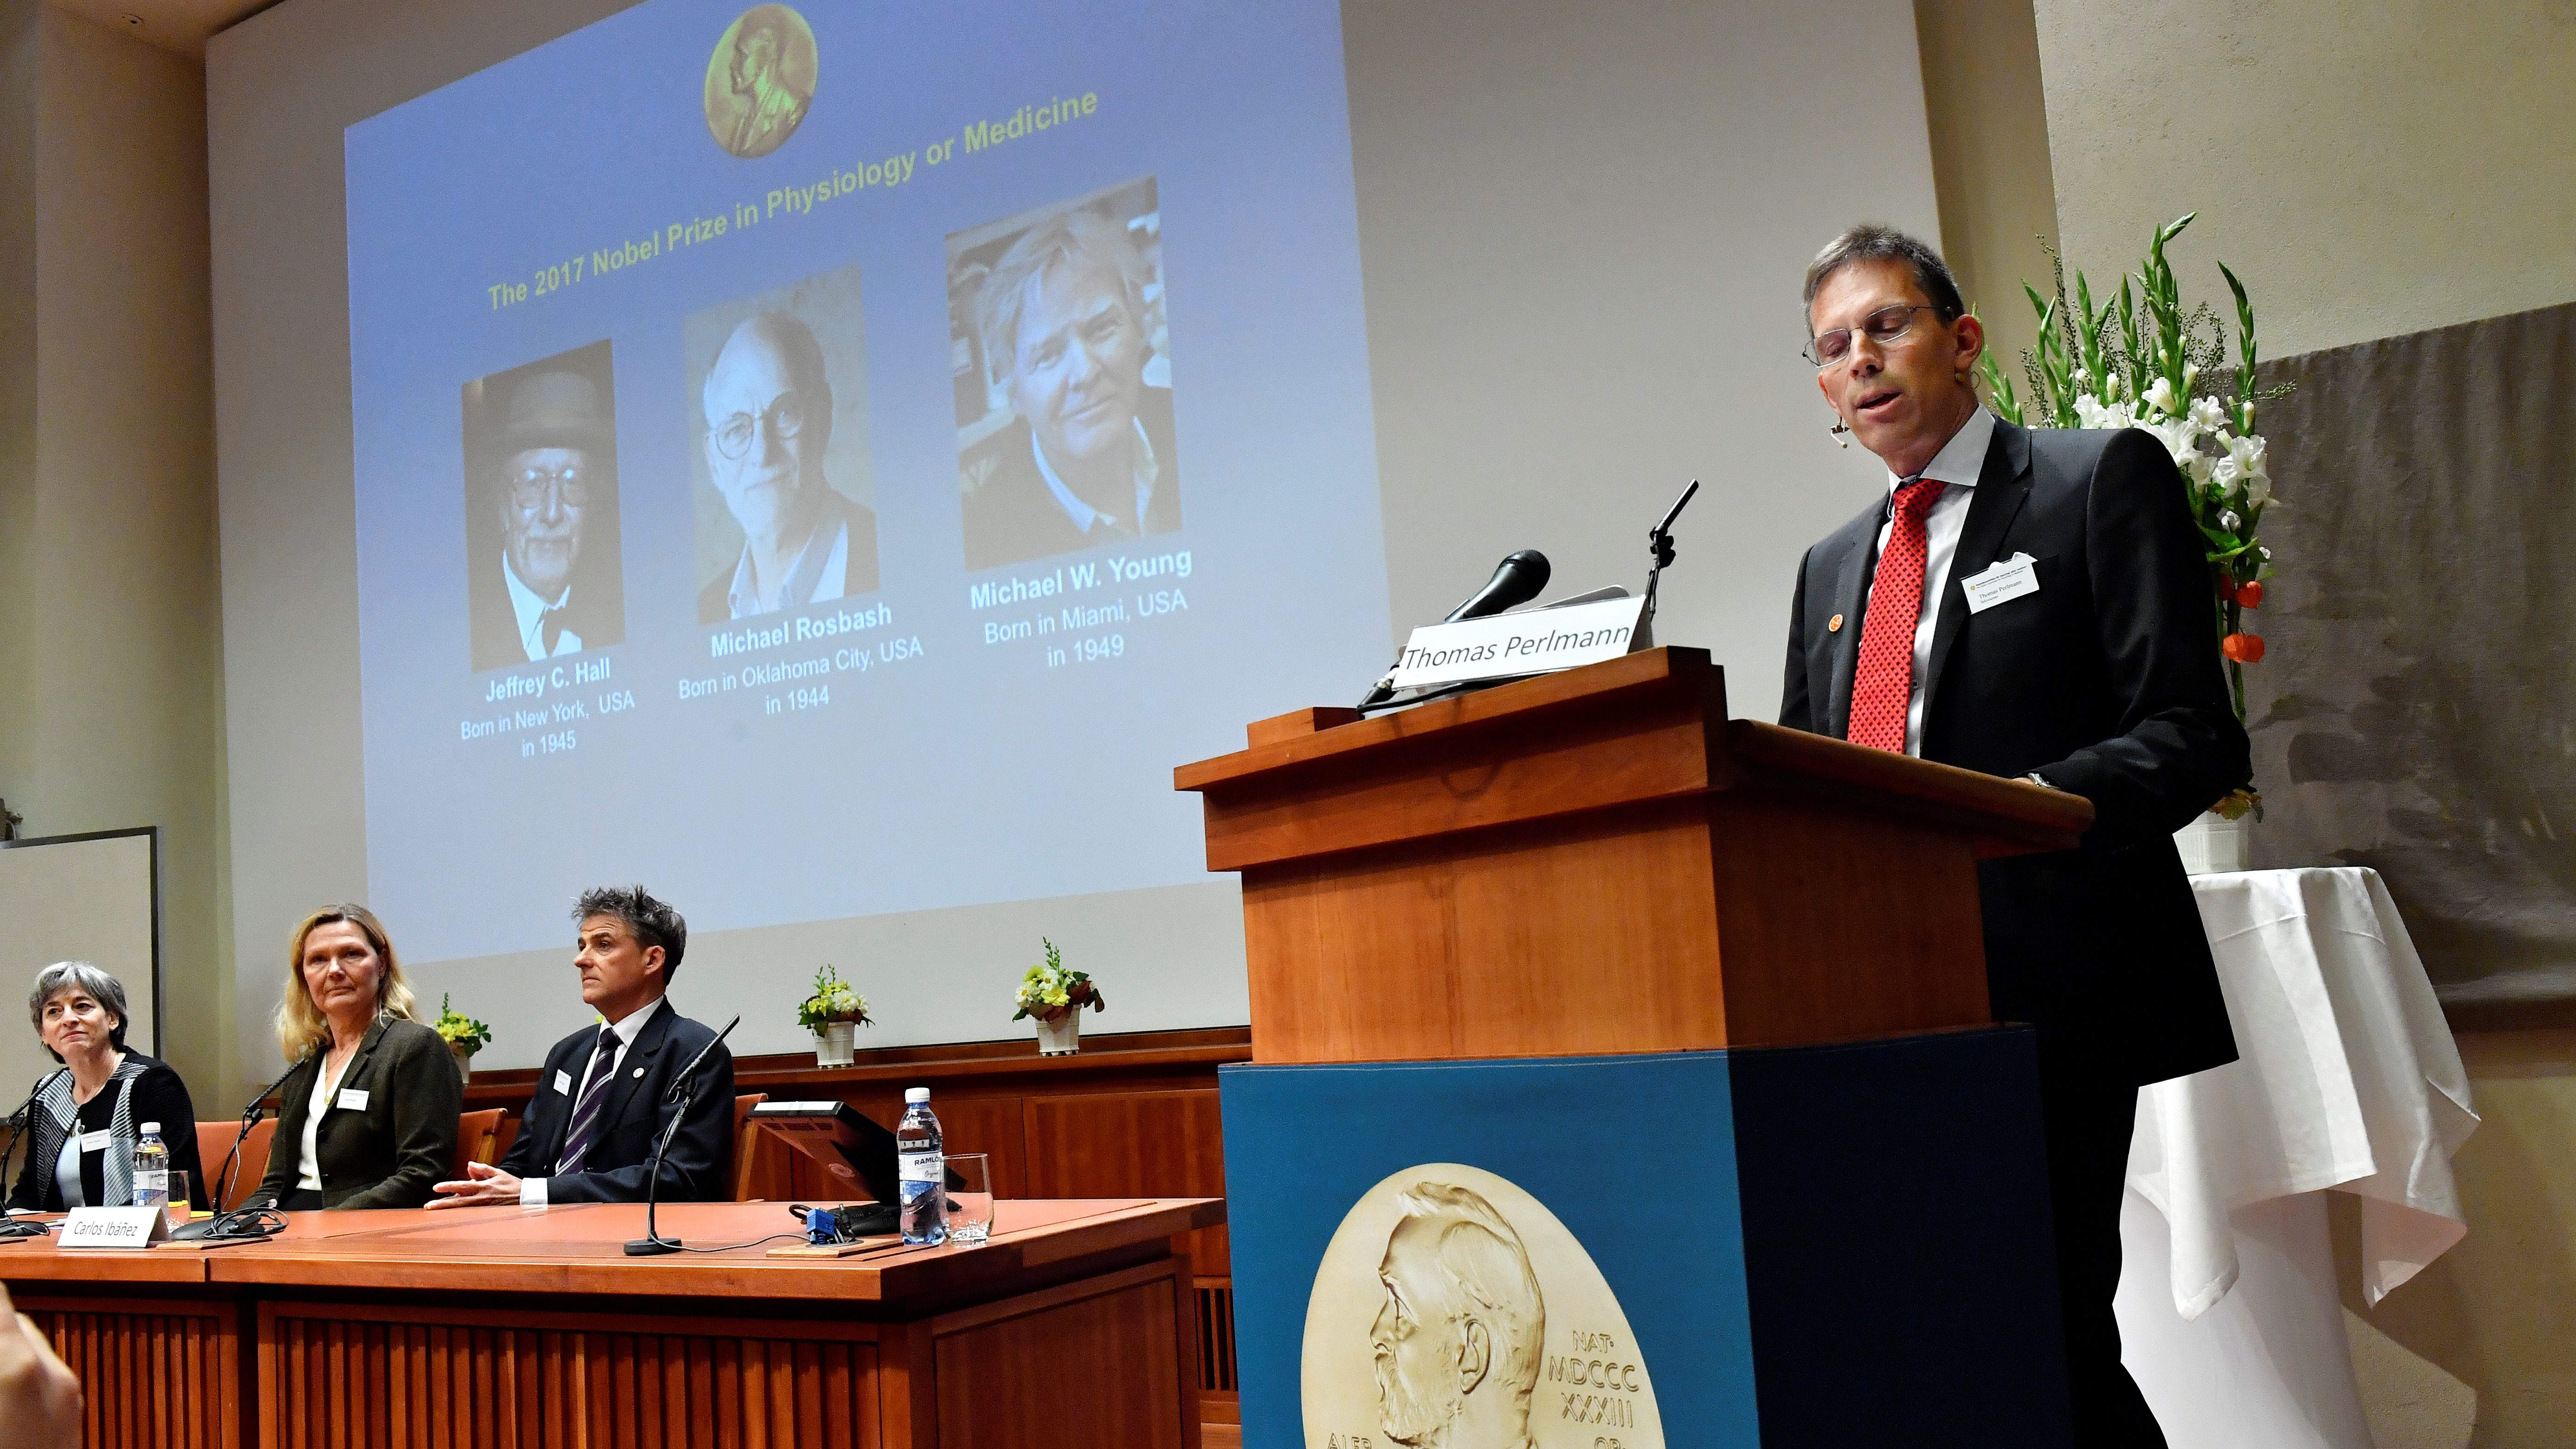 Thomas Perlmann, Secretary of the Nobel Committee for Physiology or Medicine, announces the names of Jeffrey C. Hall, Michael Rosbash and Michael W. Young  as winners of the 2017 Nobel Prize in Physiology or Medicine